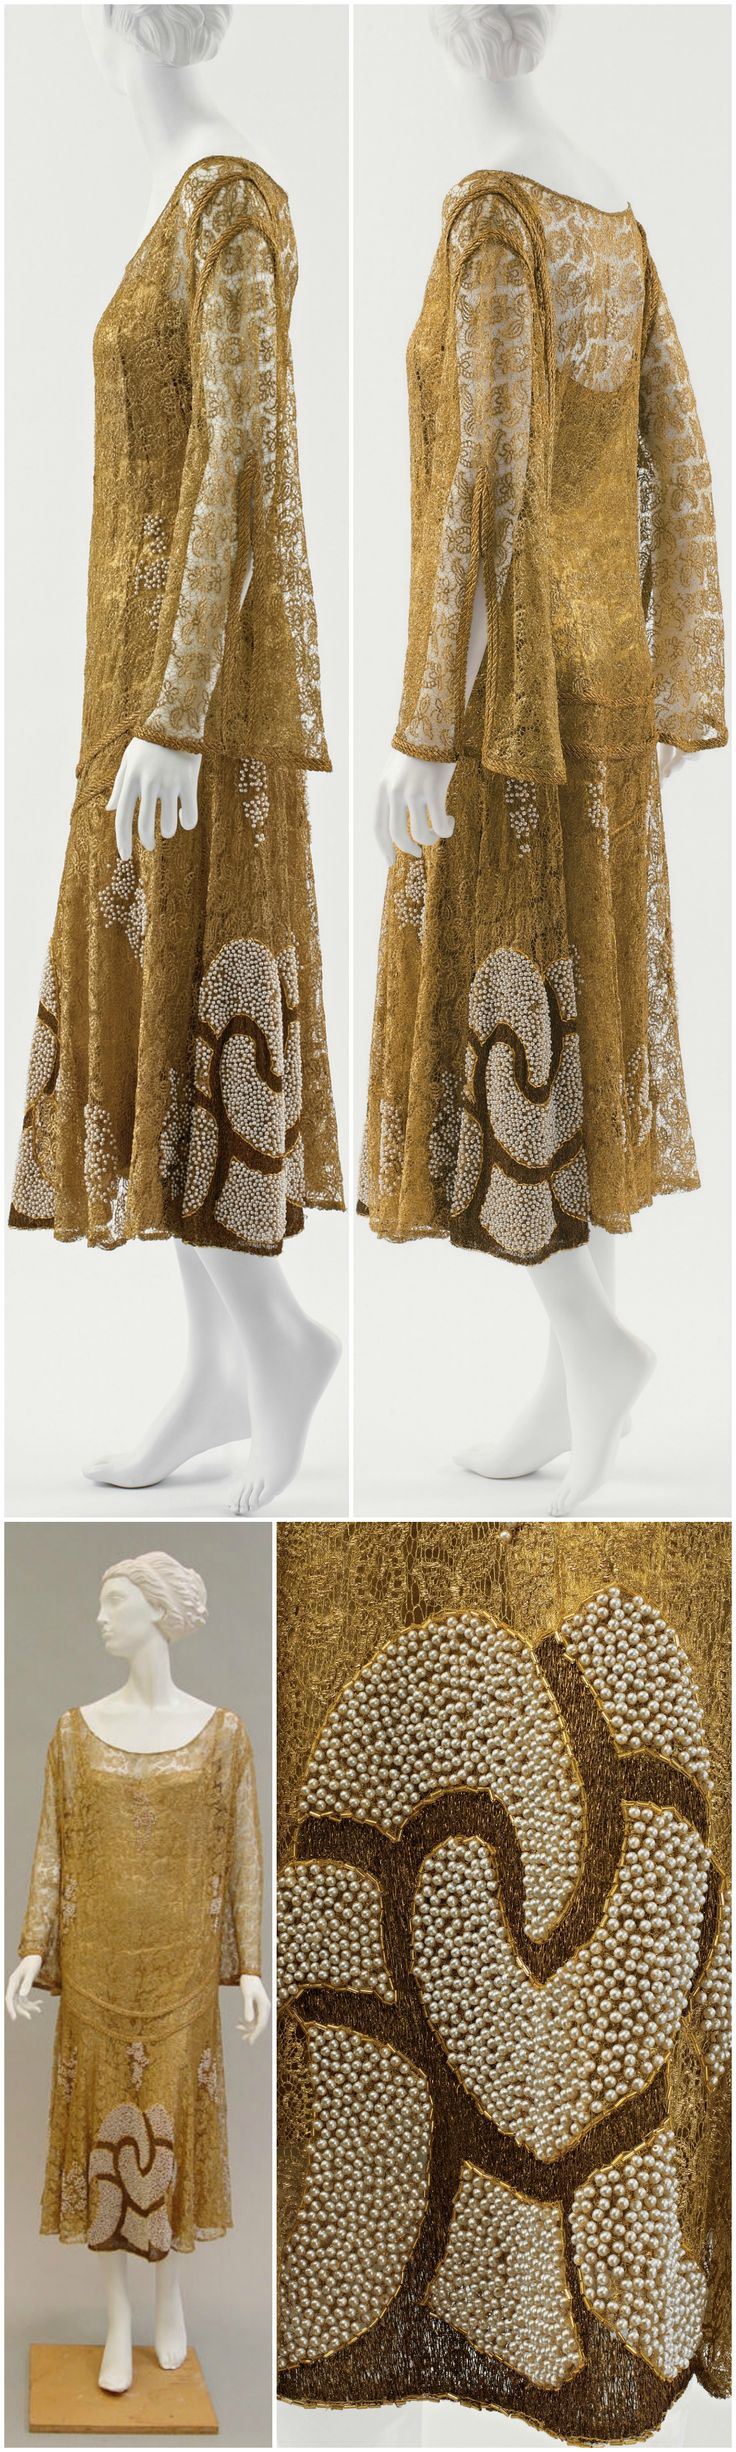 Fashion Flashback: Style From the 20s and 30s StyleCaster 48